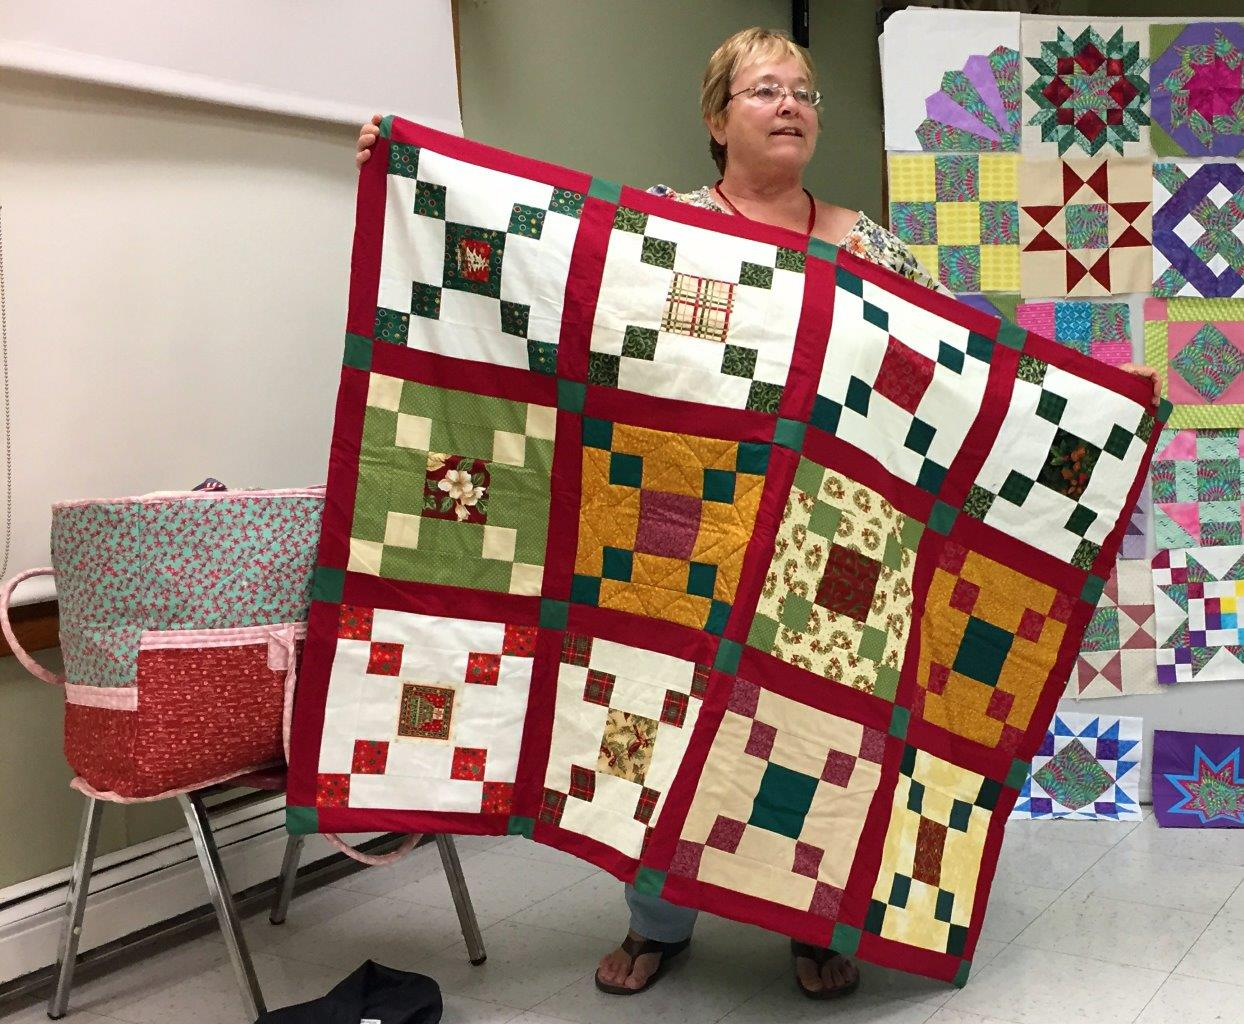 Laurel's Holiday Quilt and Mary Poppins Bag